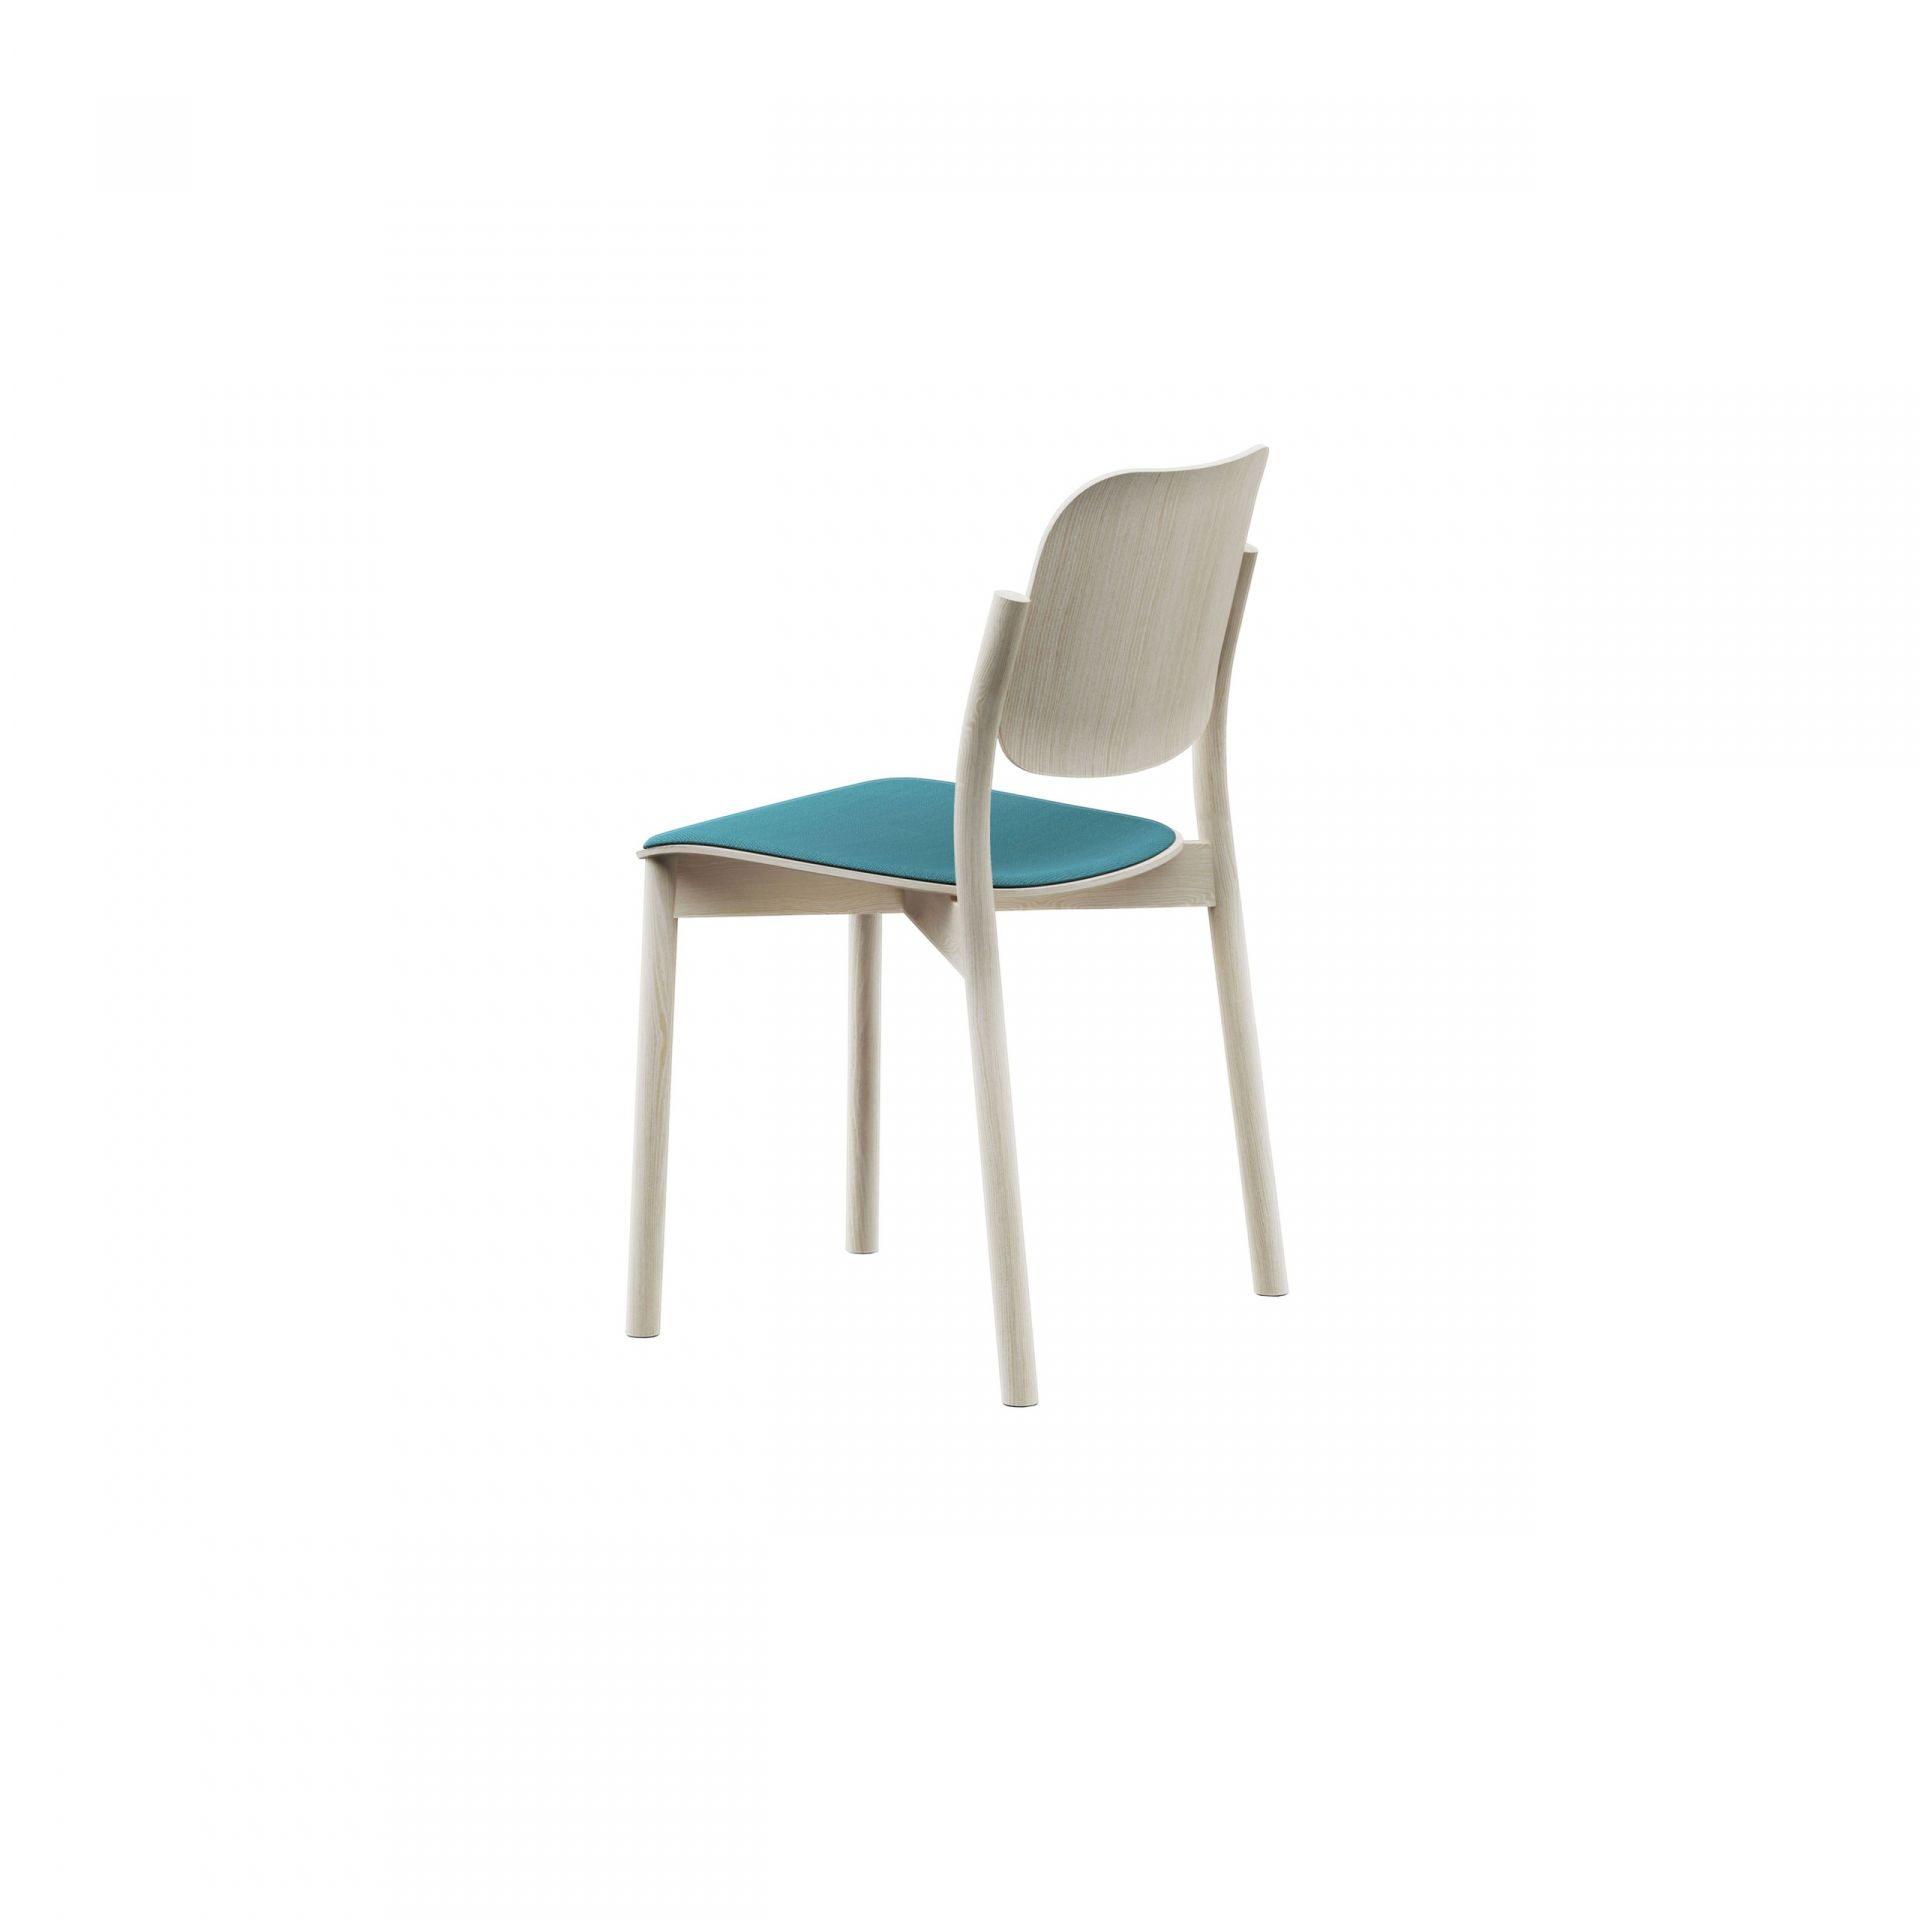 Zoe Wooden chair product image 2